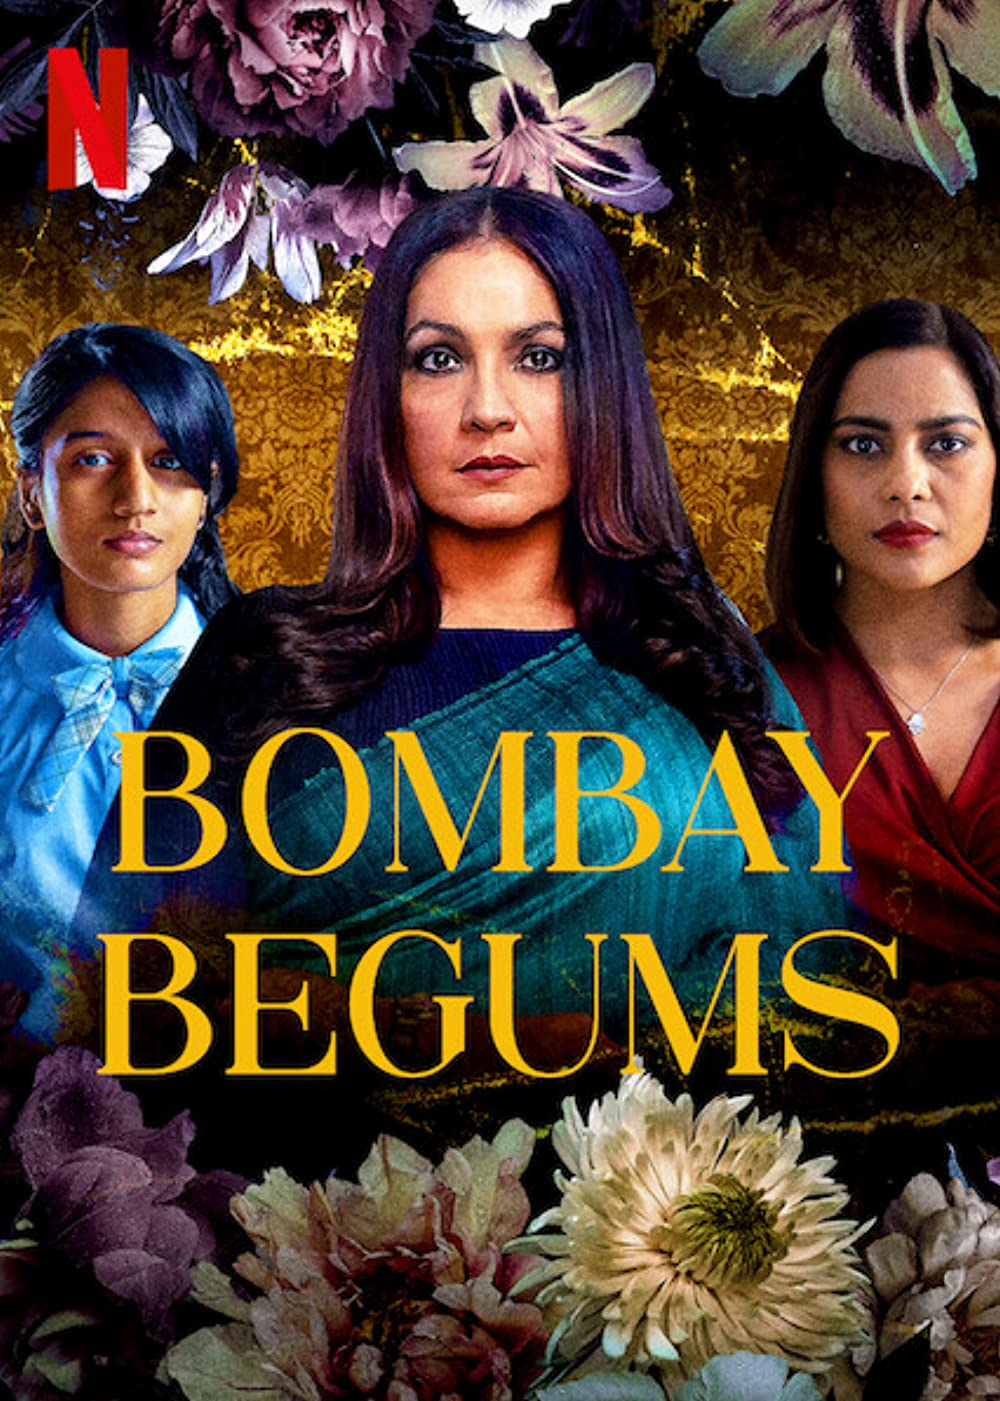 Bombay Begums 2021 S01 Hindi Netflix Original Complete Web Series  480p | 720p HDRip 960MB |2GB